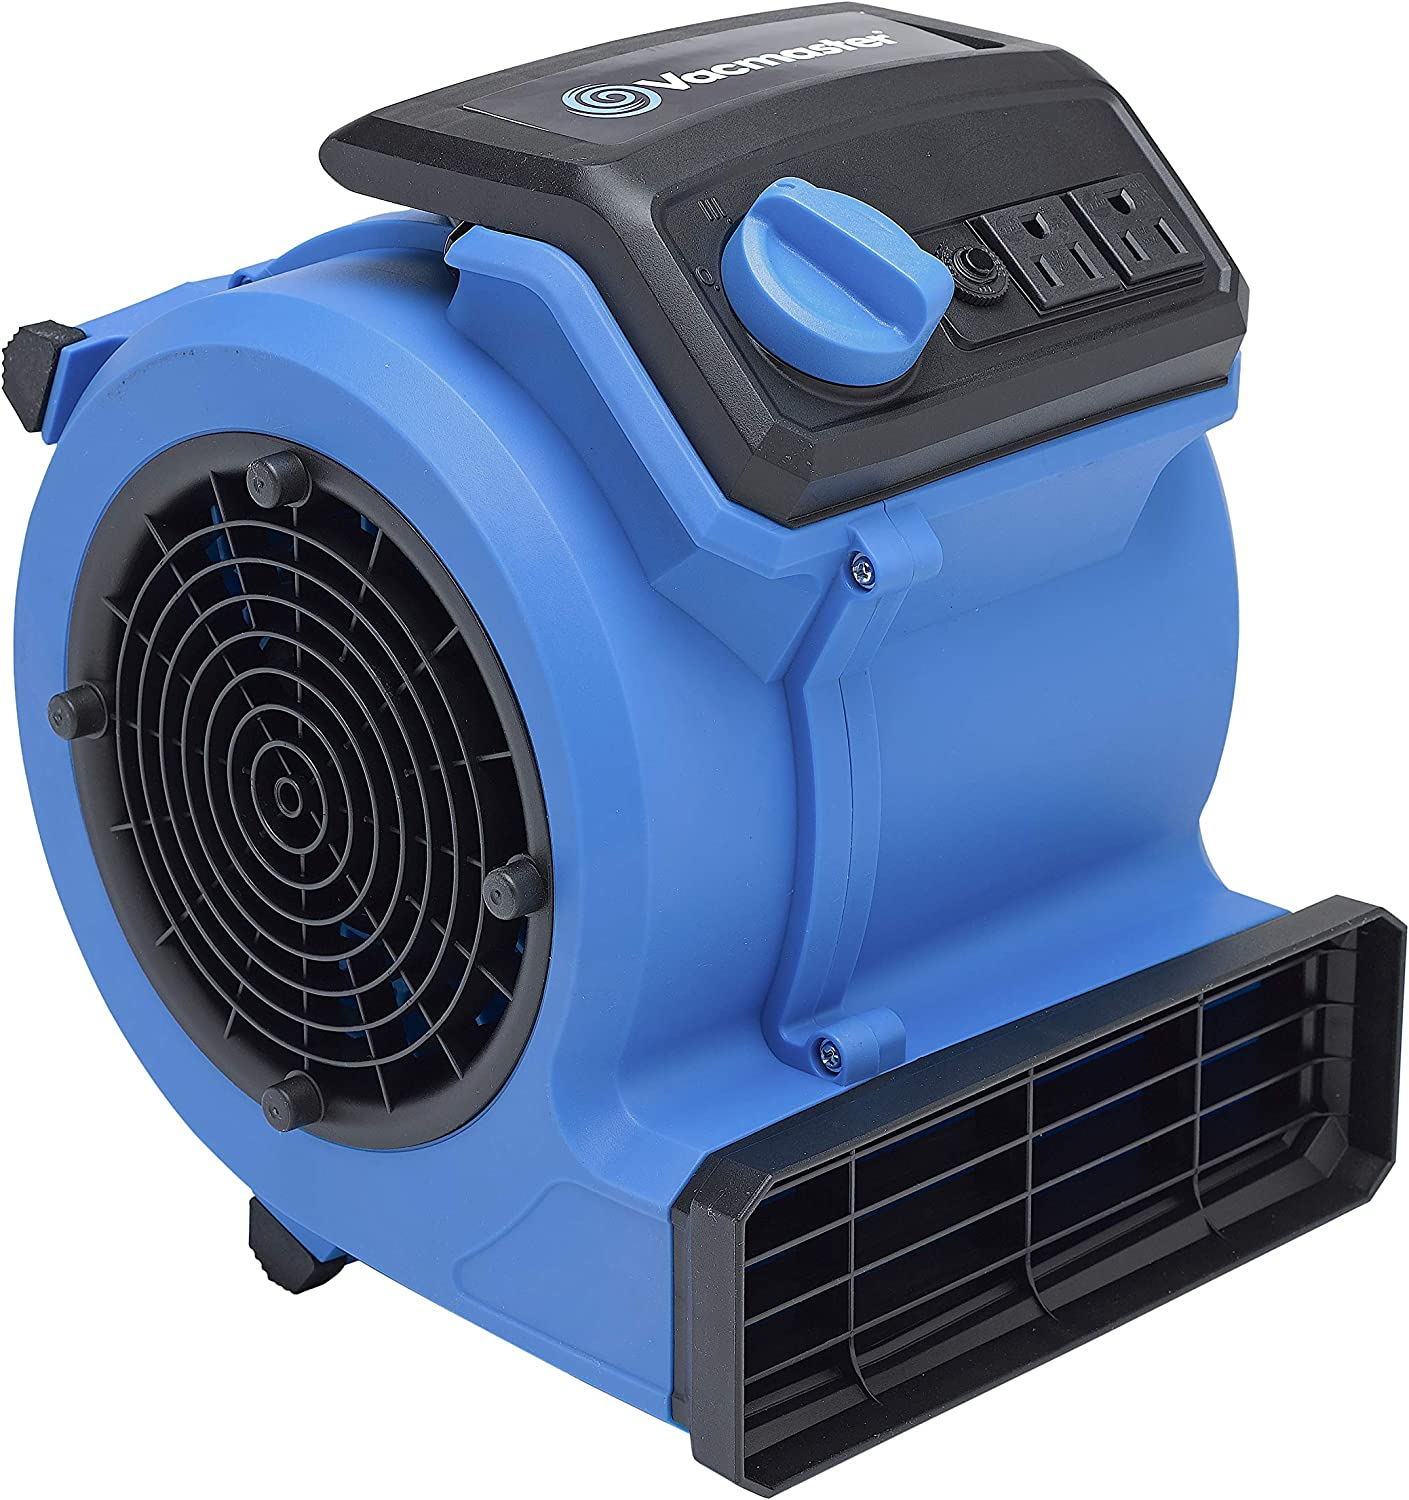 Vacmaster, AM201 0101, 550 CFM Portable Air Mover